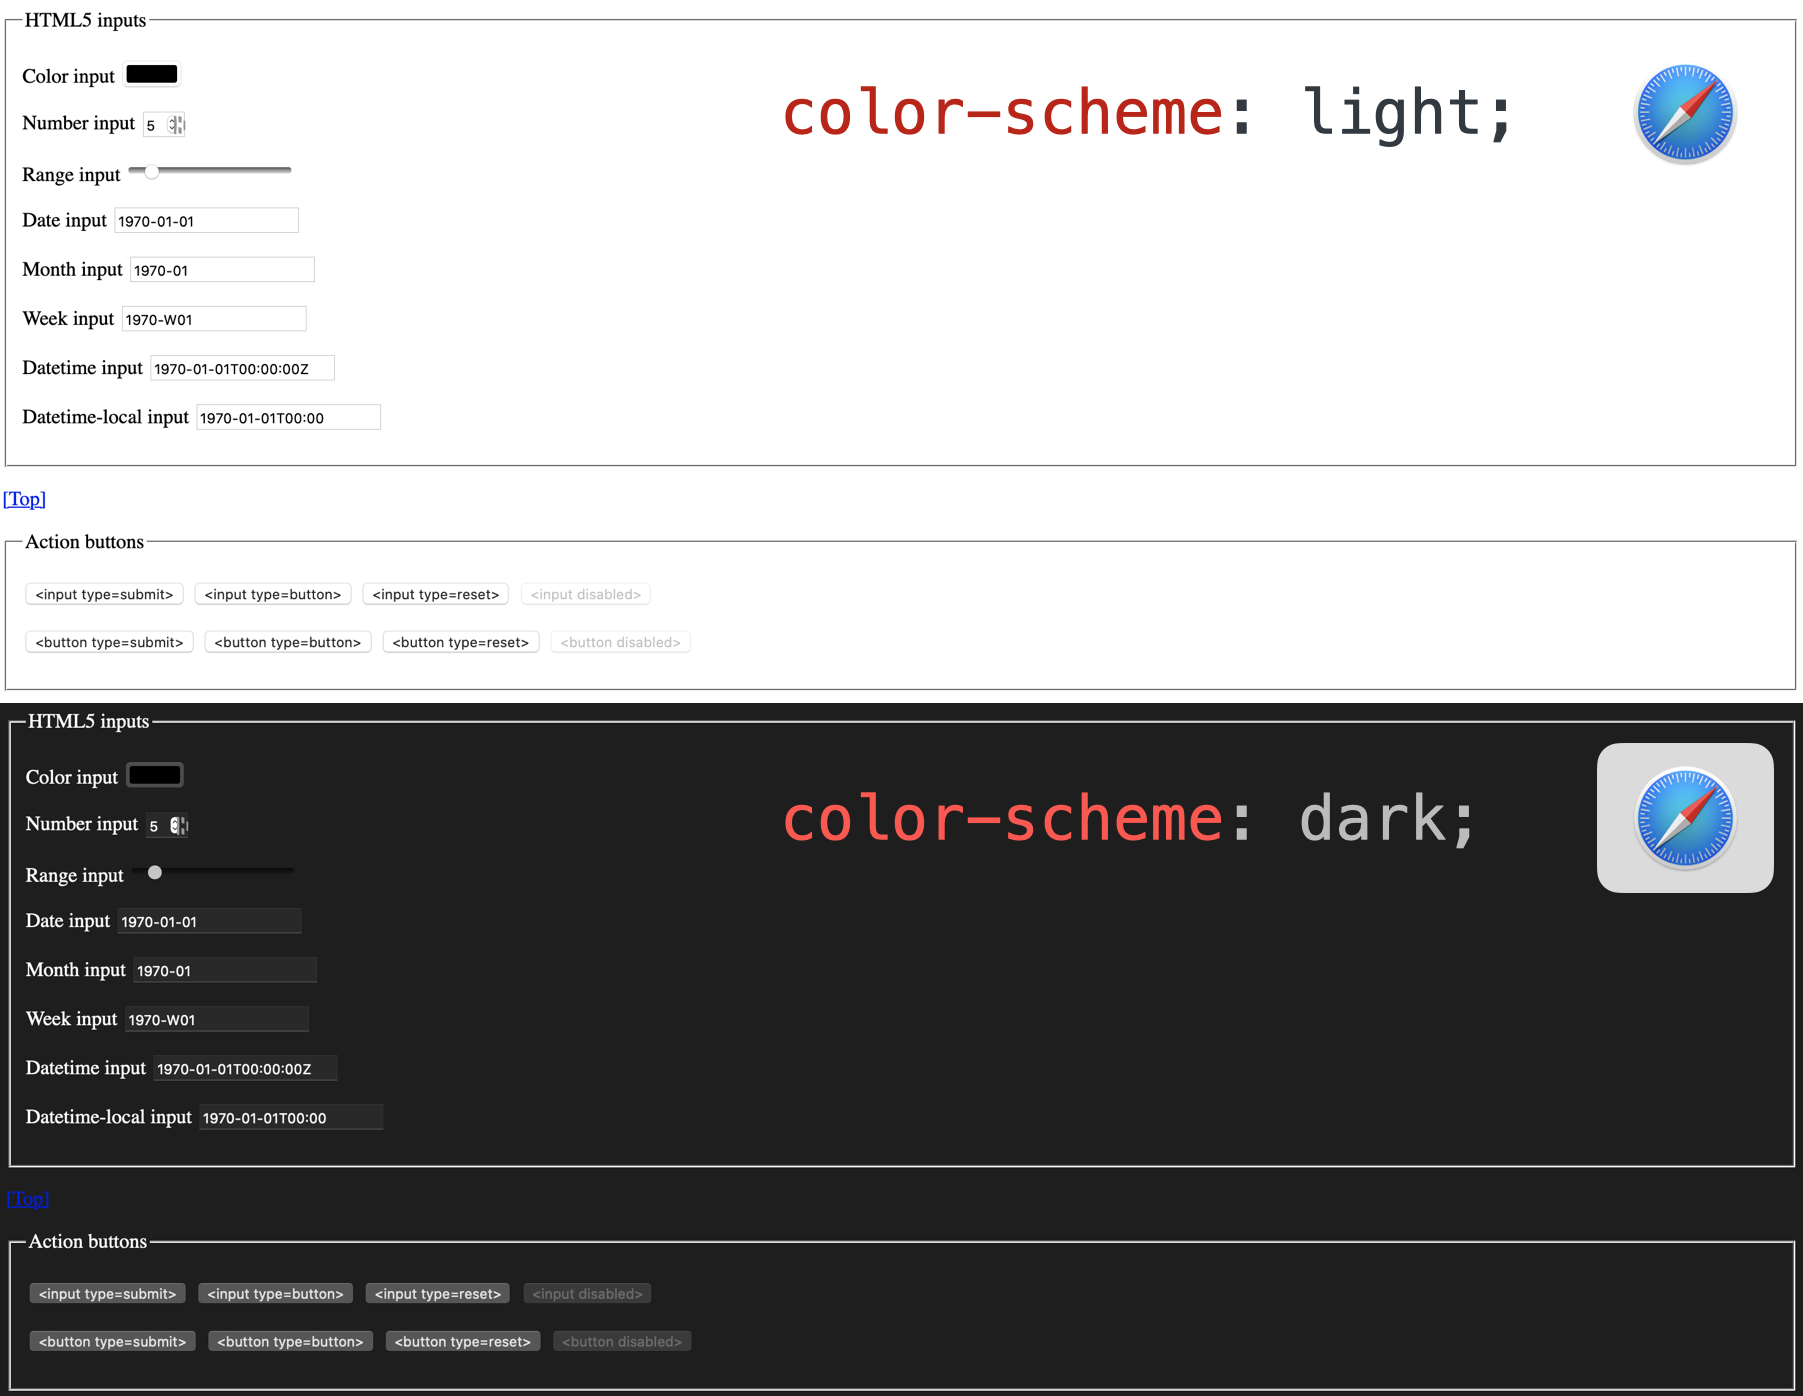 UI elements in Safari that are adjusting to color-scheme: dark